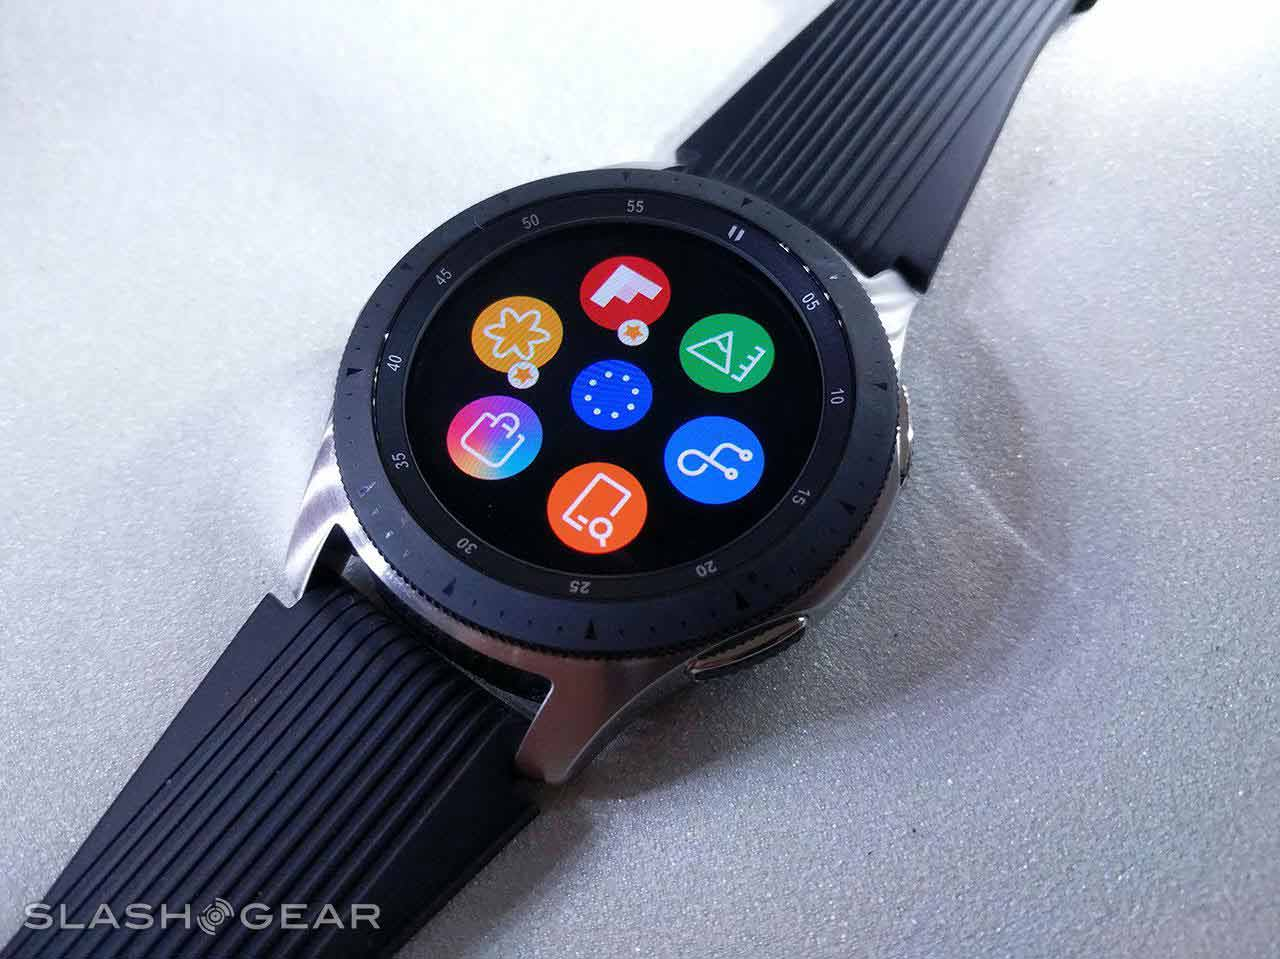 Swatch VS Samsung smartwatch lawsuit, claims, and 3rd-party fallout